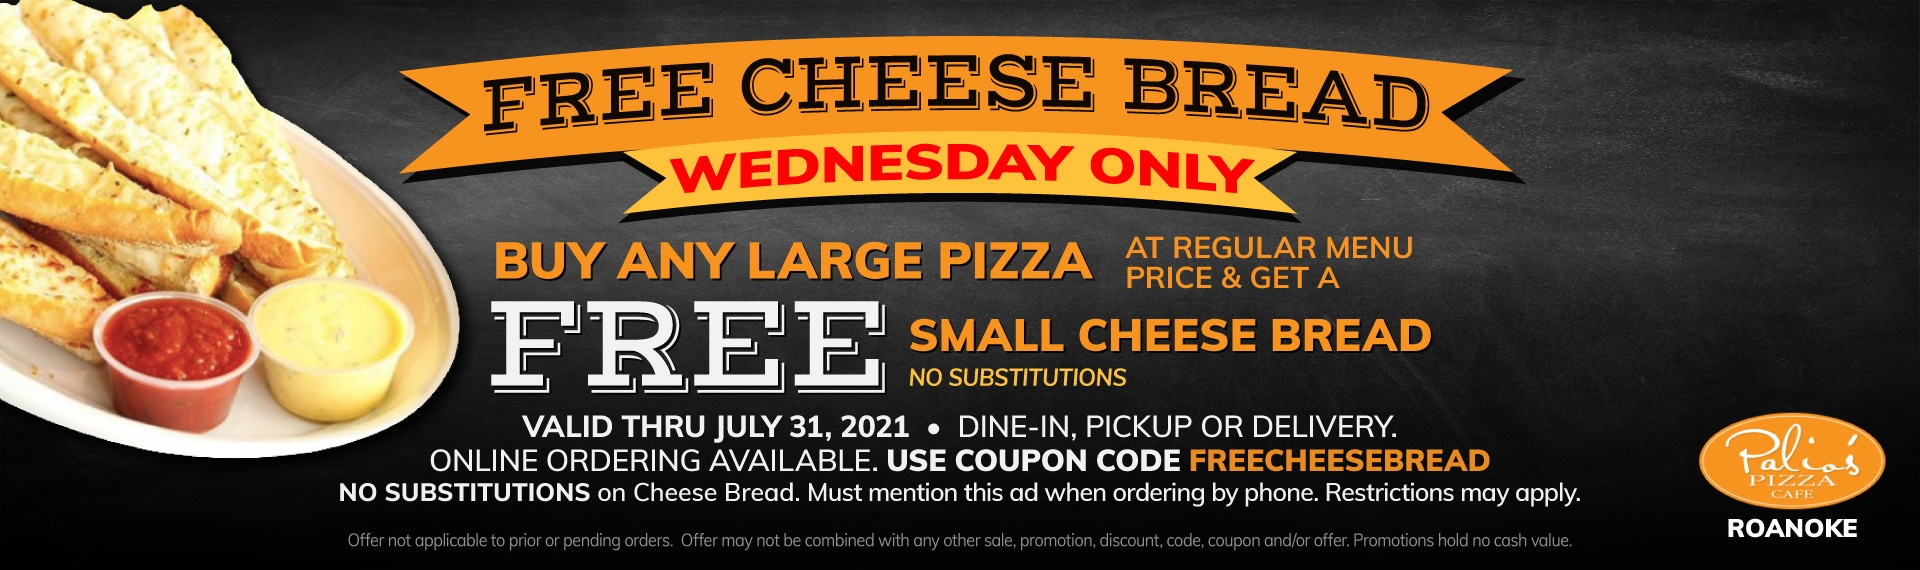 palios-pizza-free-cheese-bread-exp07jul31-slide